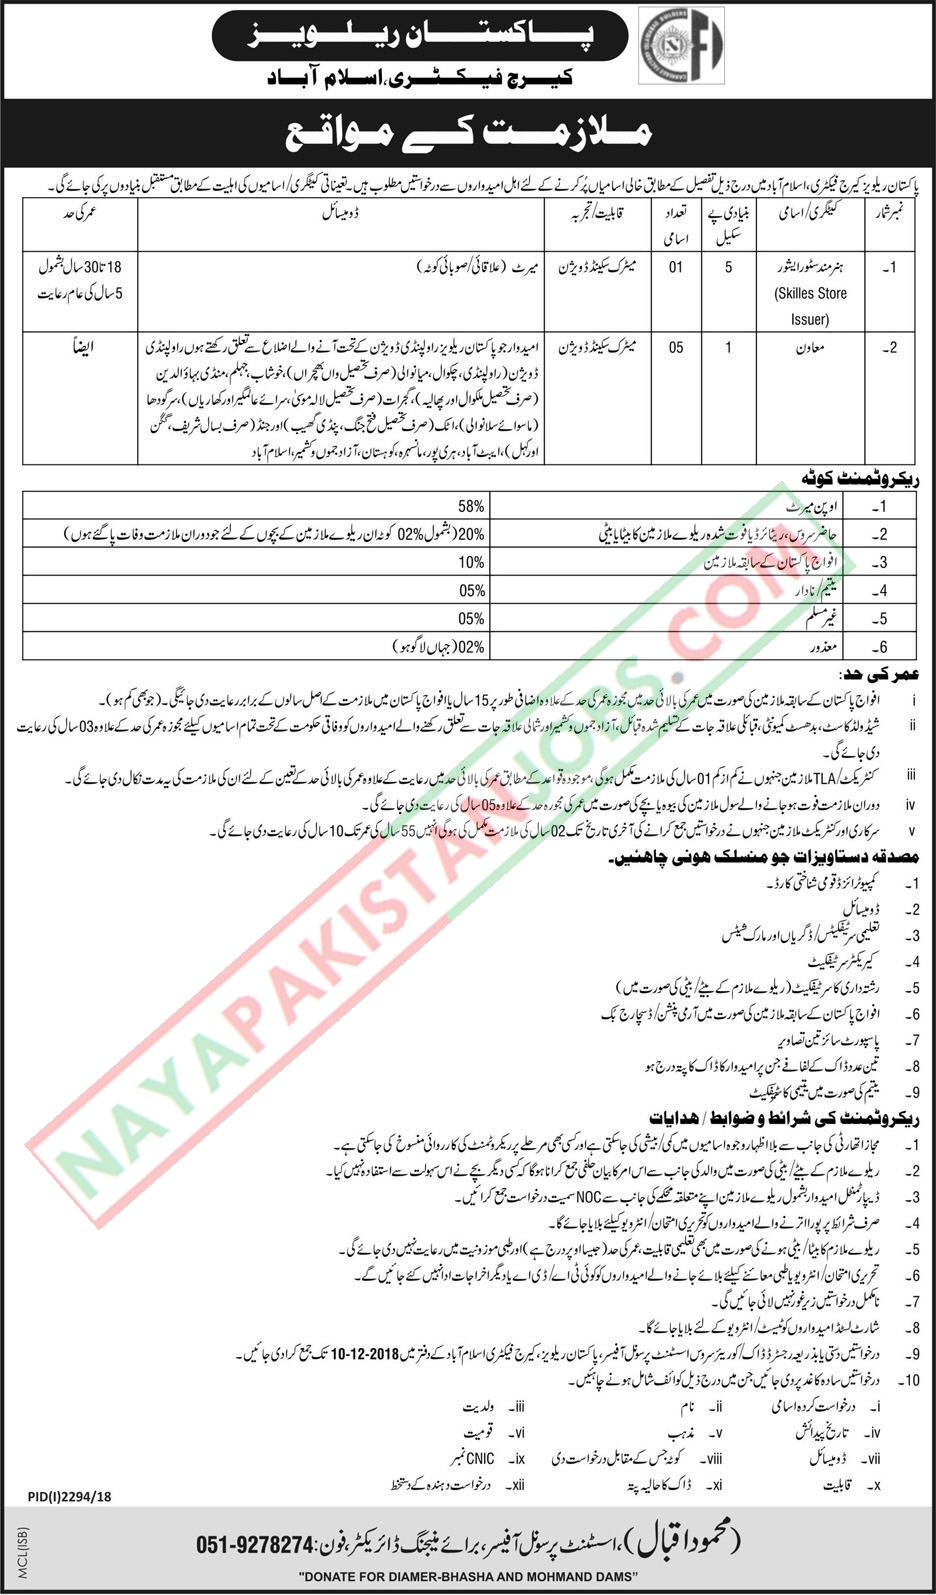 Latest Vacancies Announced in Pakistan Railway Carriage Factory Islamabad 23 November 2018 - Naya Pakistan